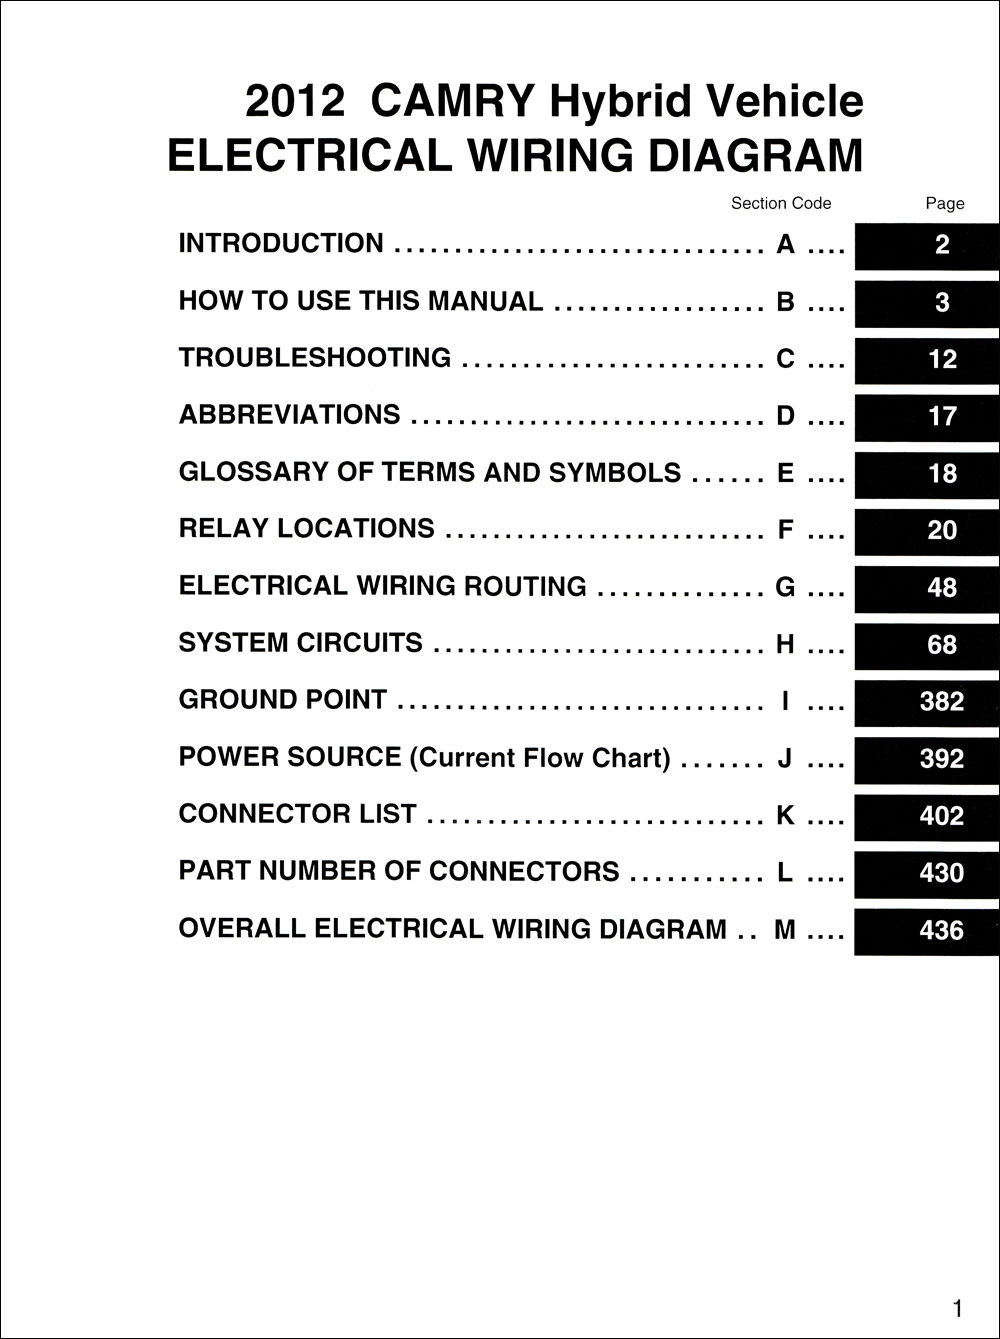 2012 Toyota Camry Hybrid Wiring Diagram Manual Reprint. click on thumbnail  to zoom